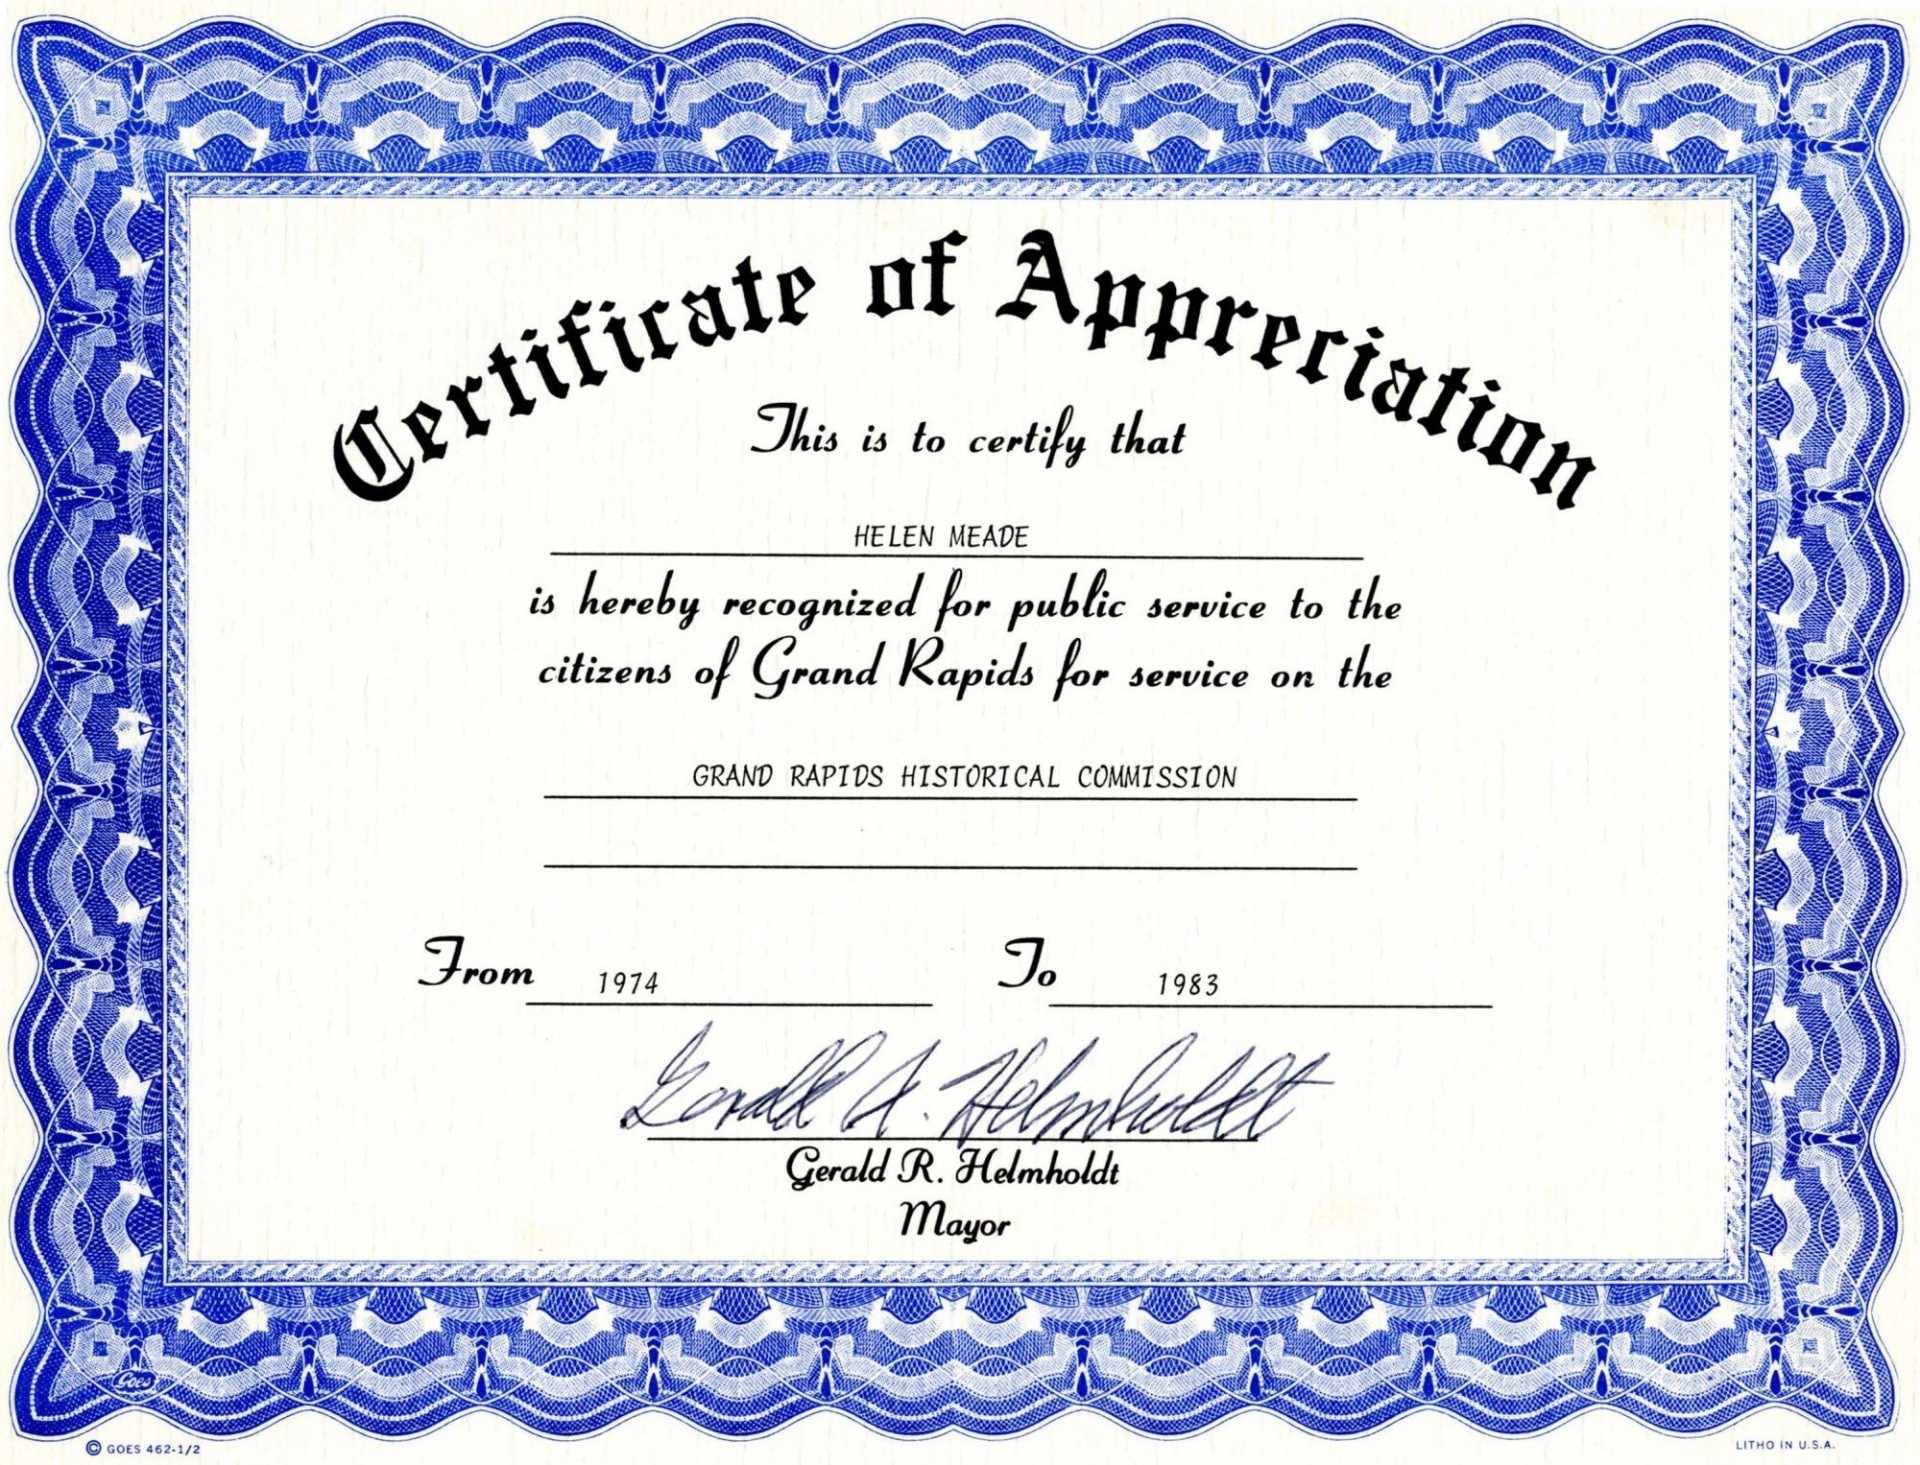 003 Unbelievable Certificate Of Appreciation Template Free Highest Clarity  Microsoft Word Download Publisher Editable1920